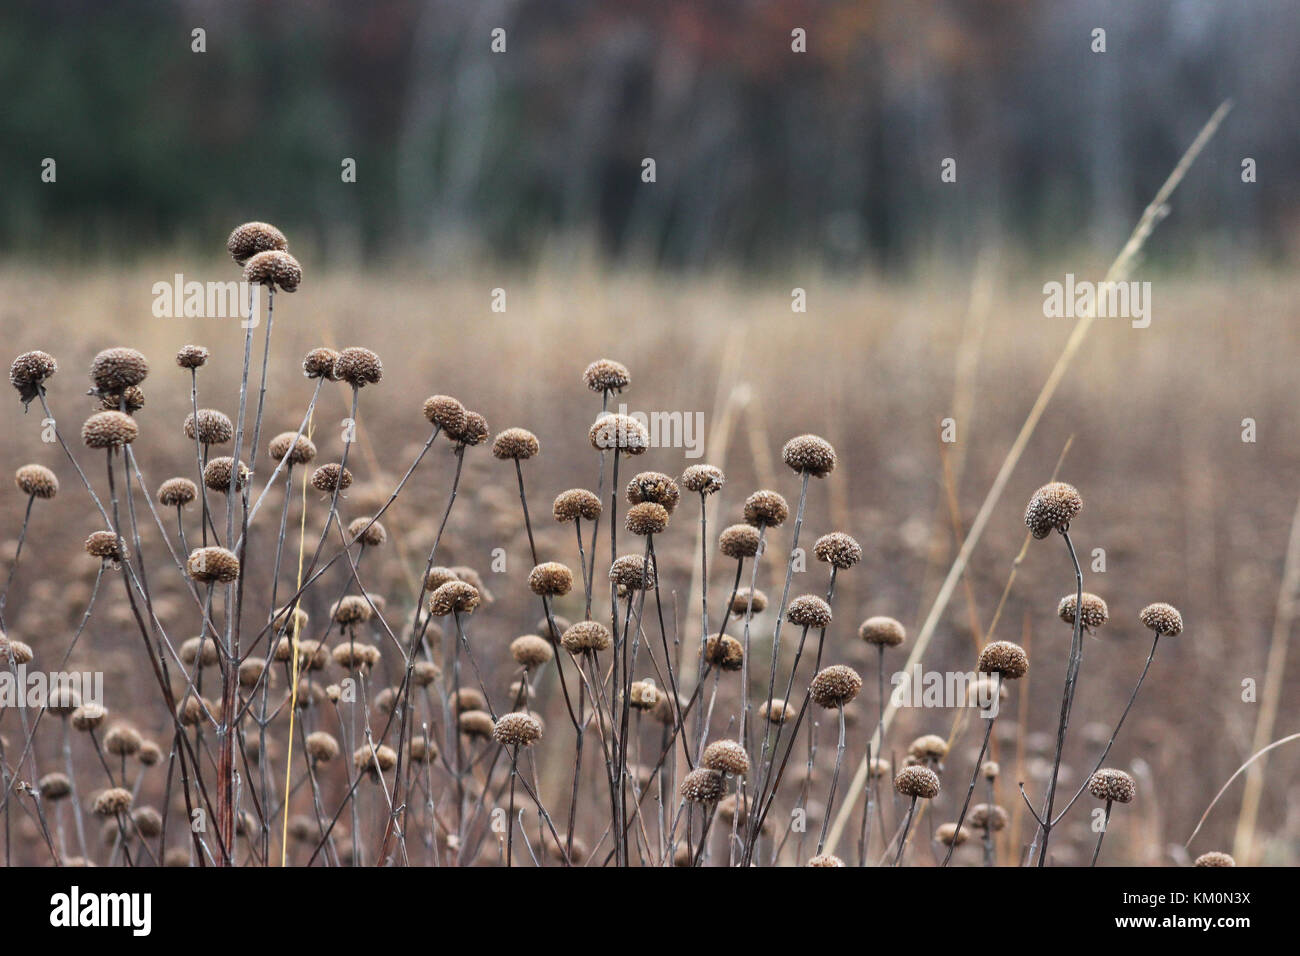 Wild bergamot seed heads grow in a field November 4, 2017 in Minnesota.  (photo by Courtney Celley via Planetpix) - Stock Image